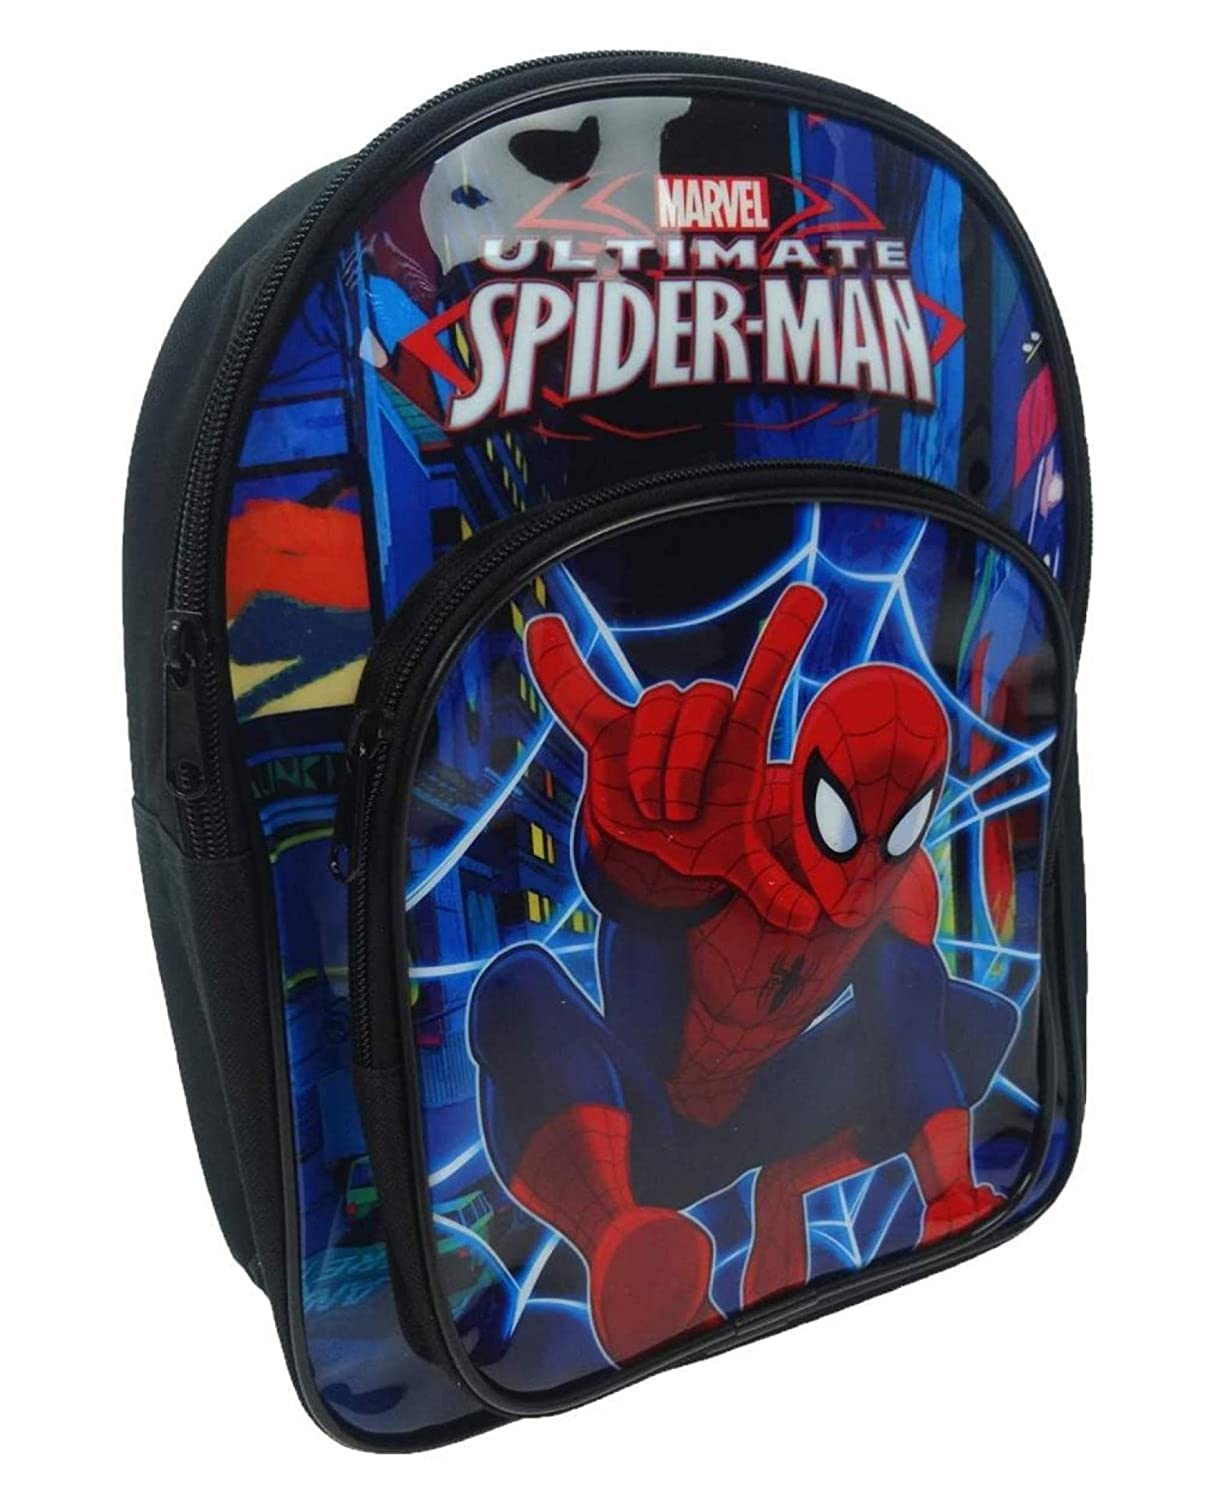 Spiderman Children's Backpack, 32 cm, 9 Liters, Black SPID001171